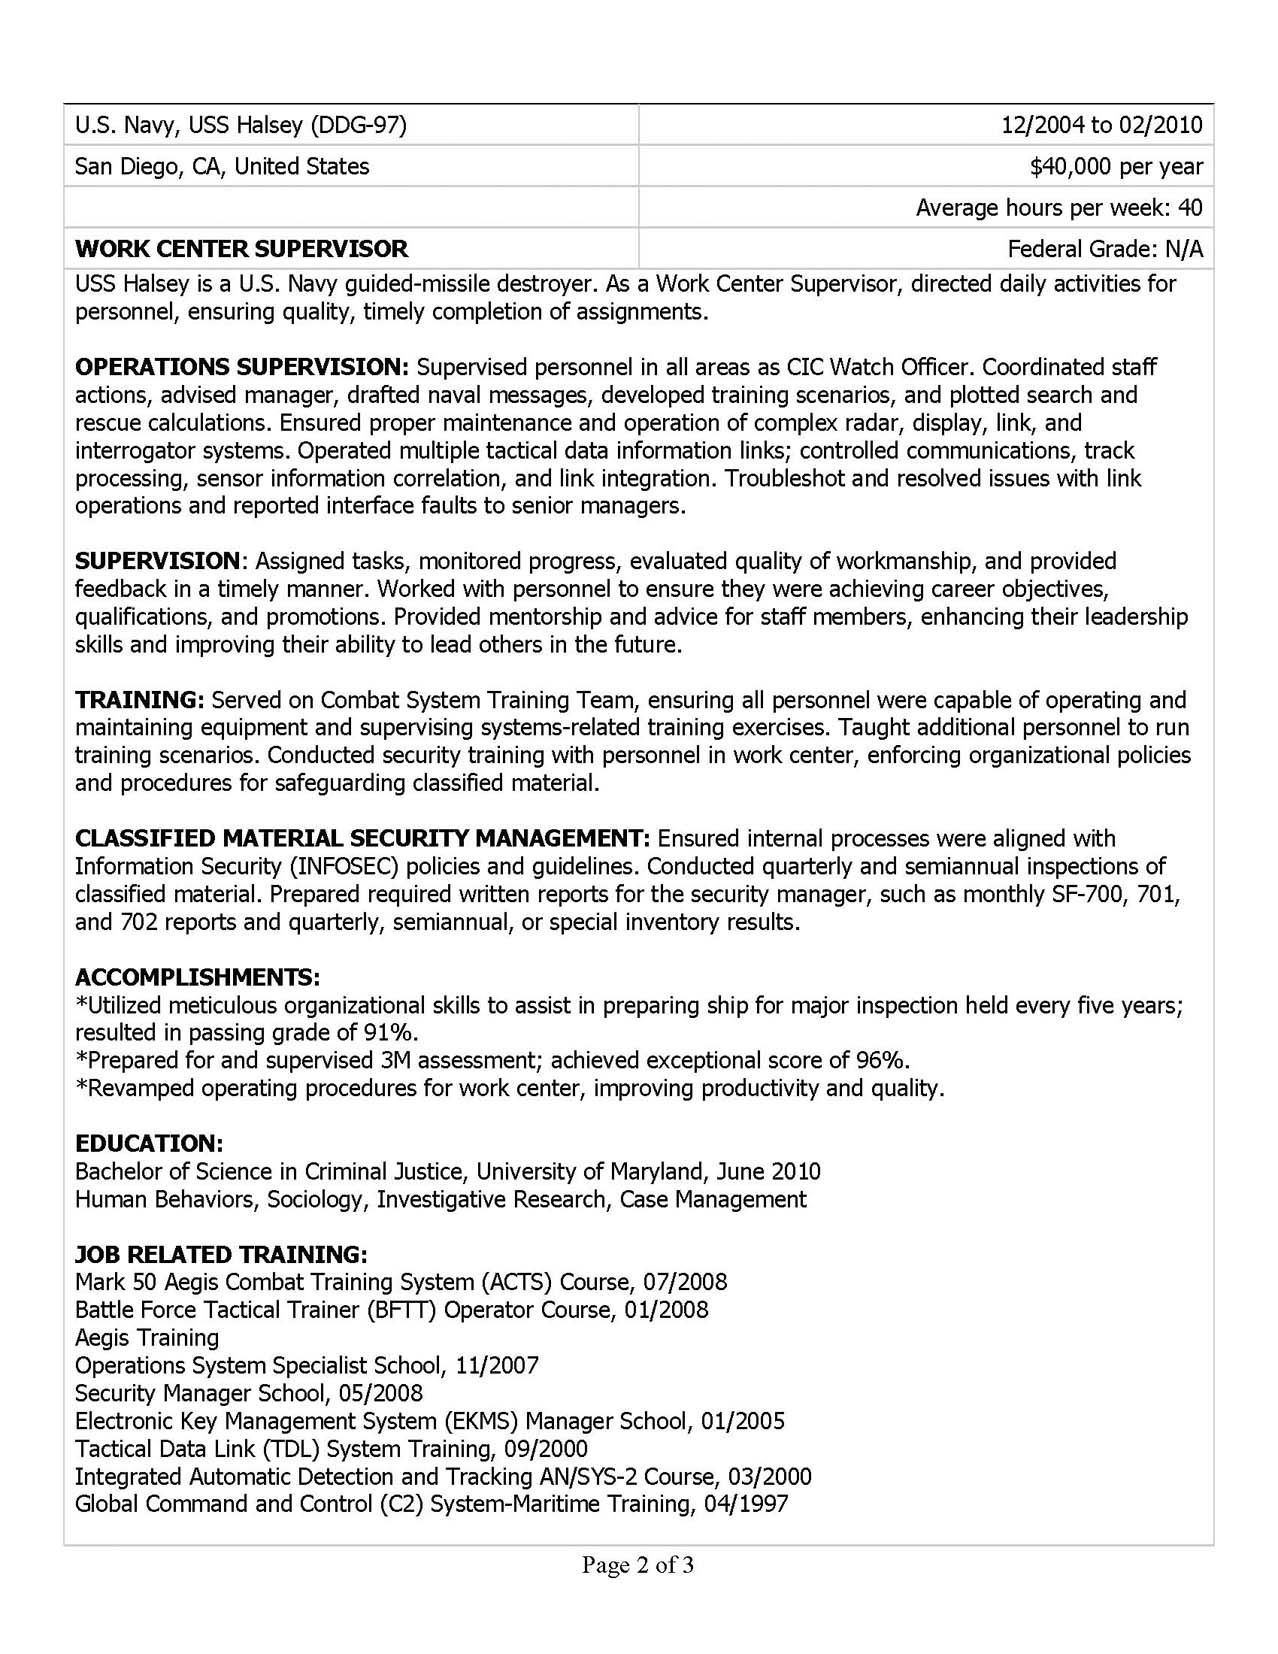 military resume samples examples writers ses ecq example usajobs sample medical insurance Resume Ses Ecq Resume Example